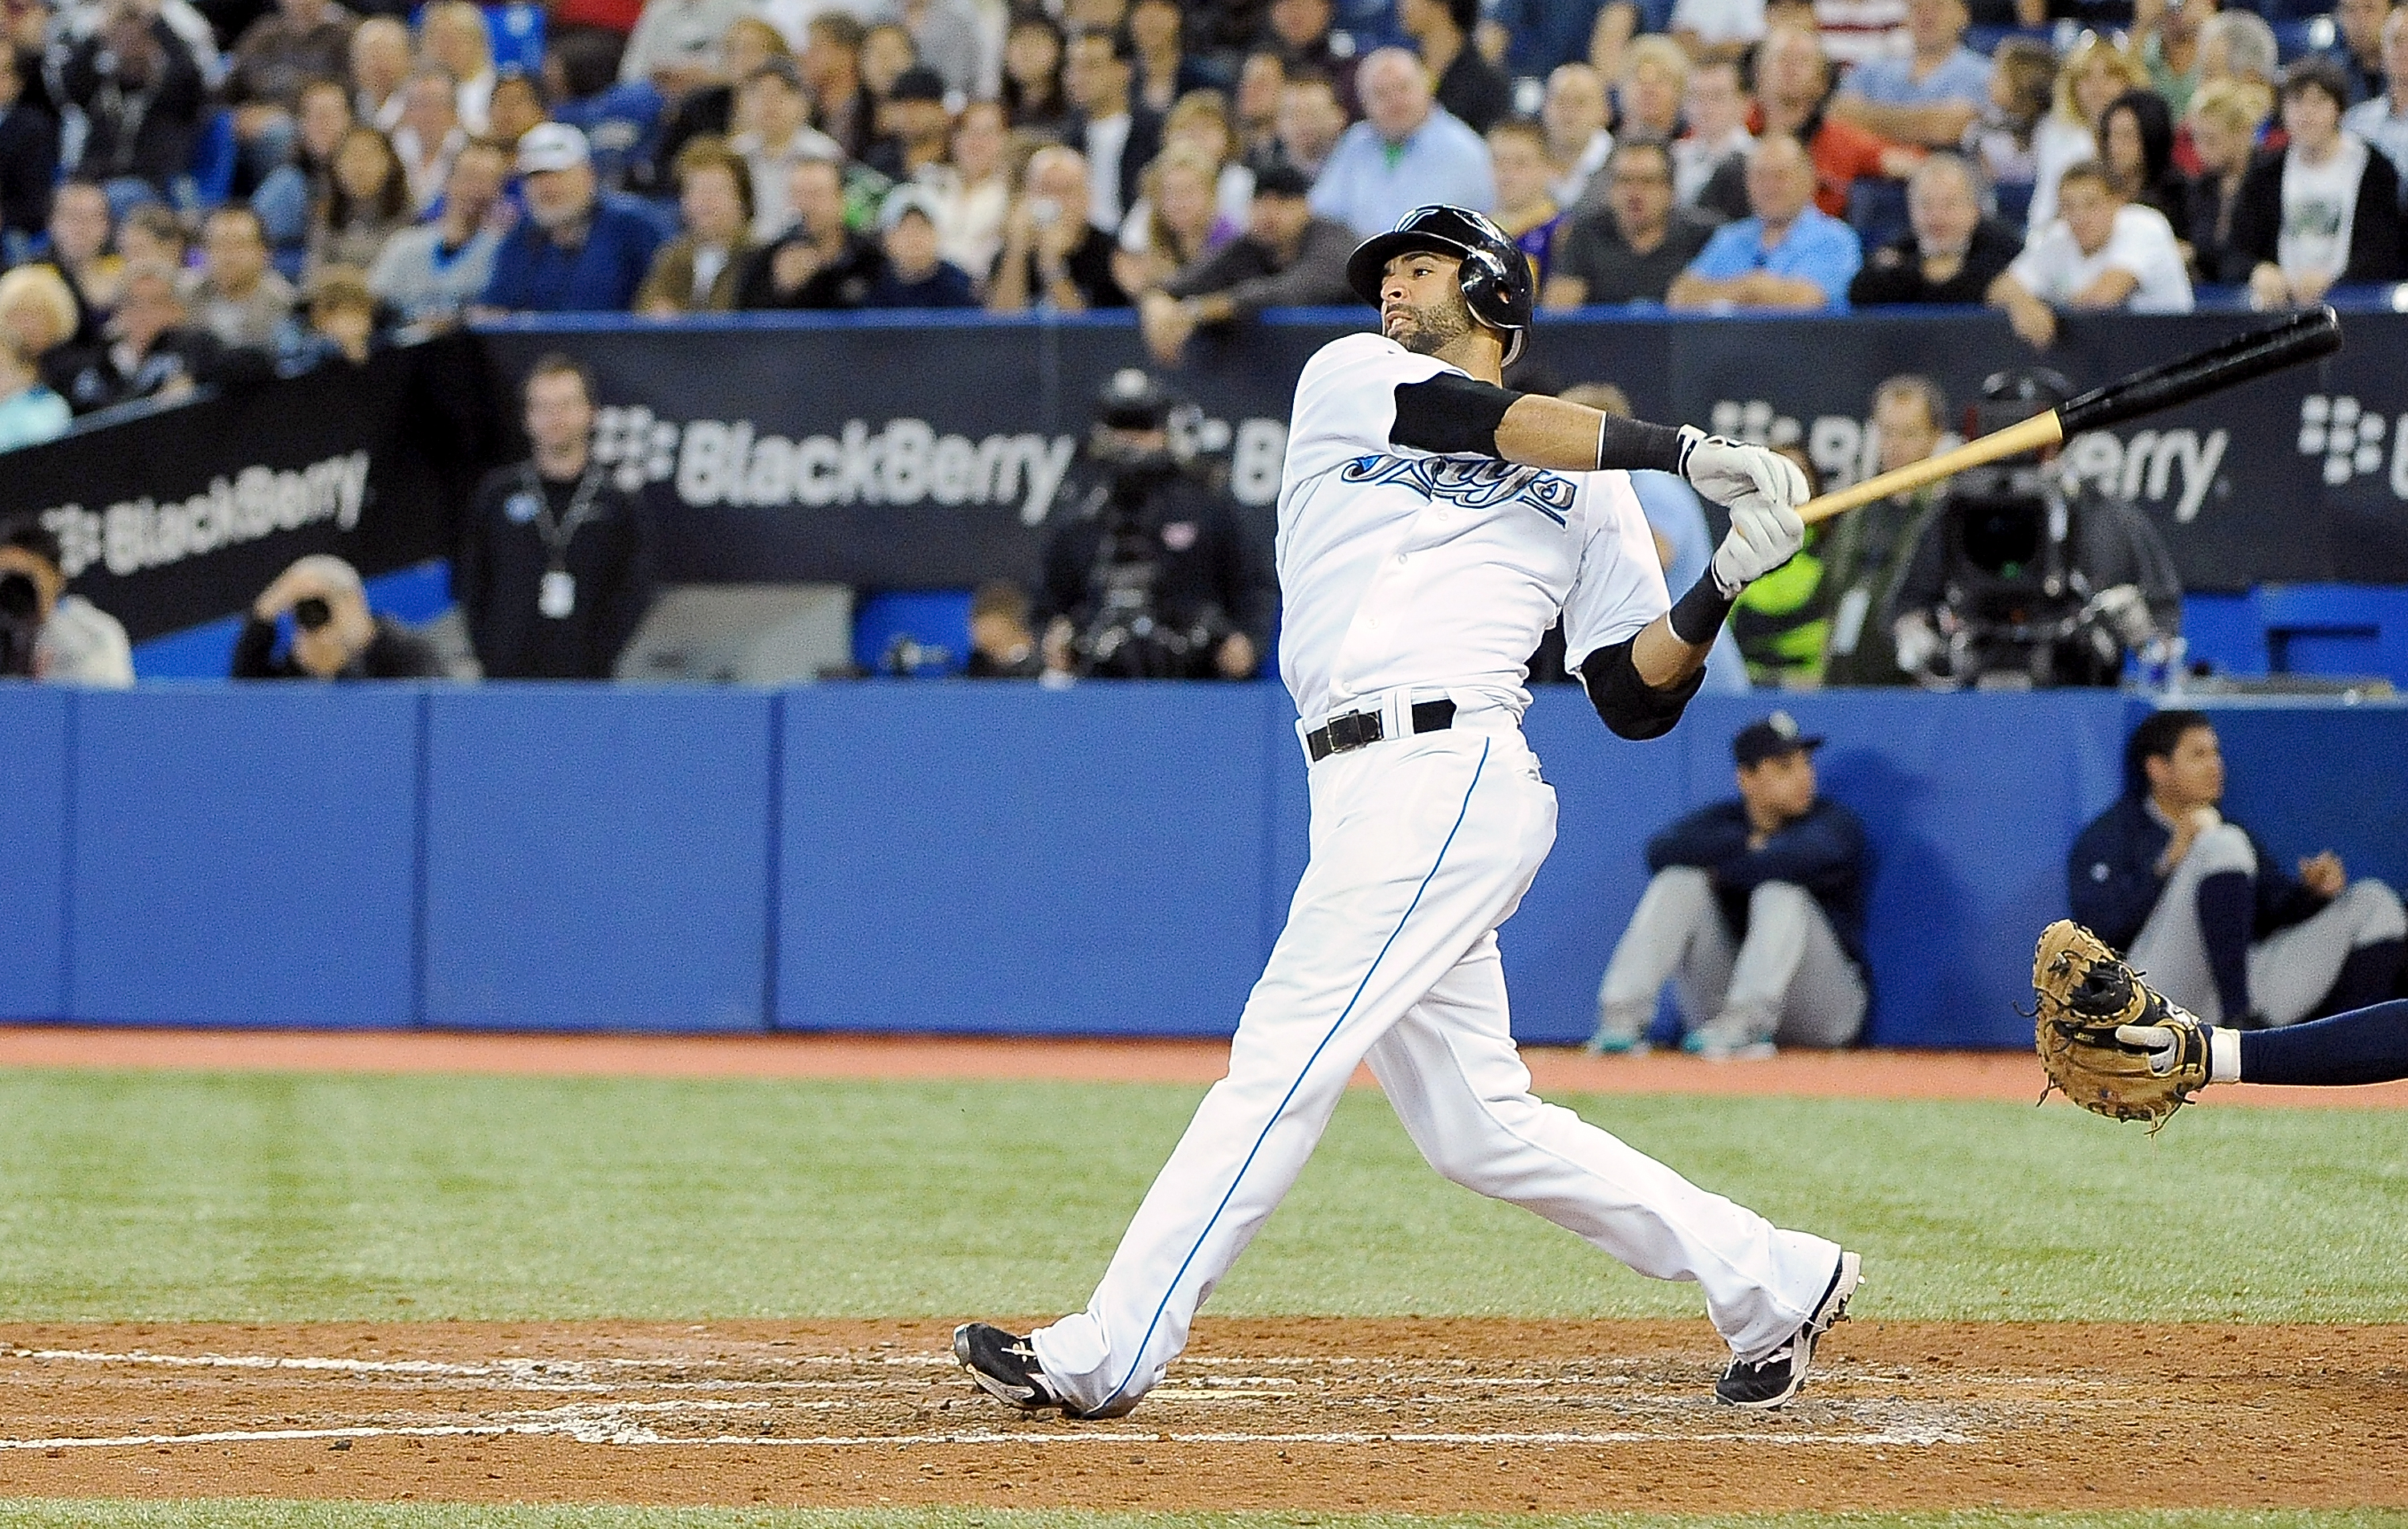 TORONTO, ON - SEPTEMBER 22: Jose Bautista #19 of the Toronto Blue Jays fouls a pitch off during a game against the Seattle Mariners> on September 22, 2010 at the Rogers Centre in Toronto, Canada. (Photo by Matthew Manor/Getty Images)